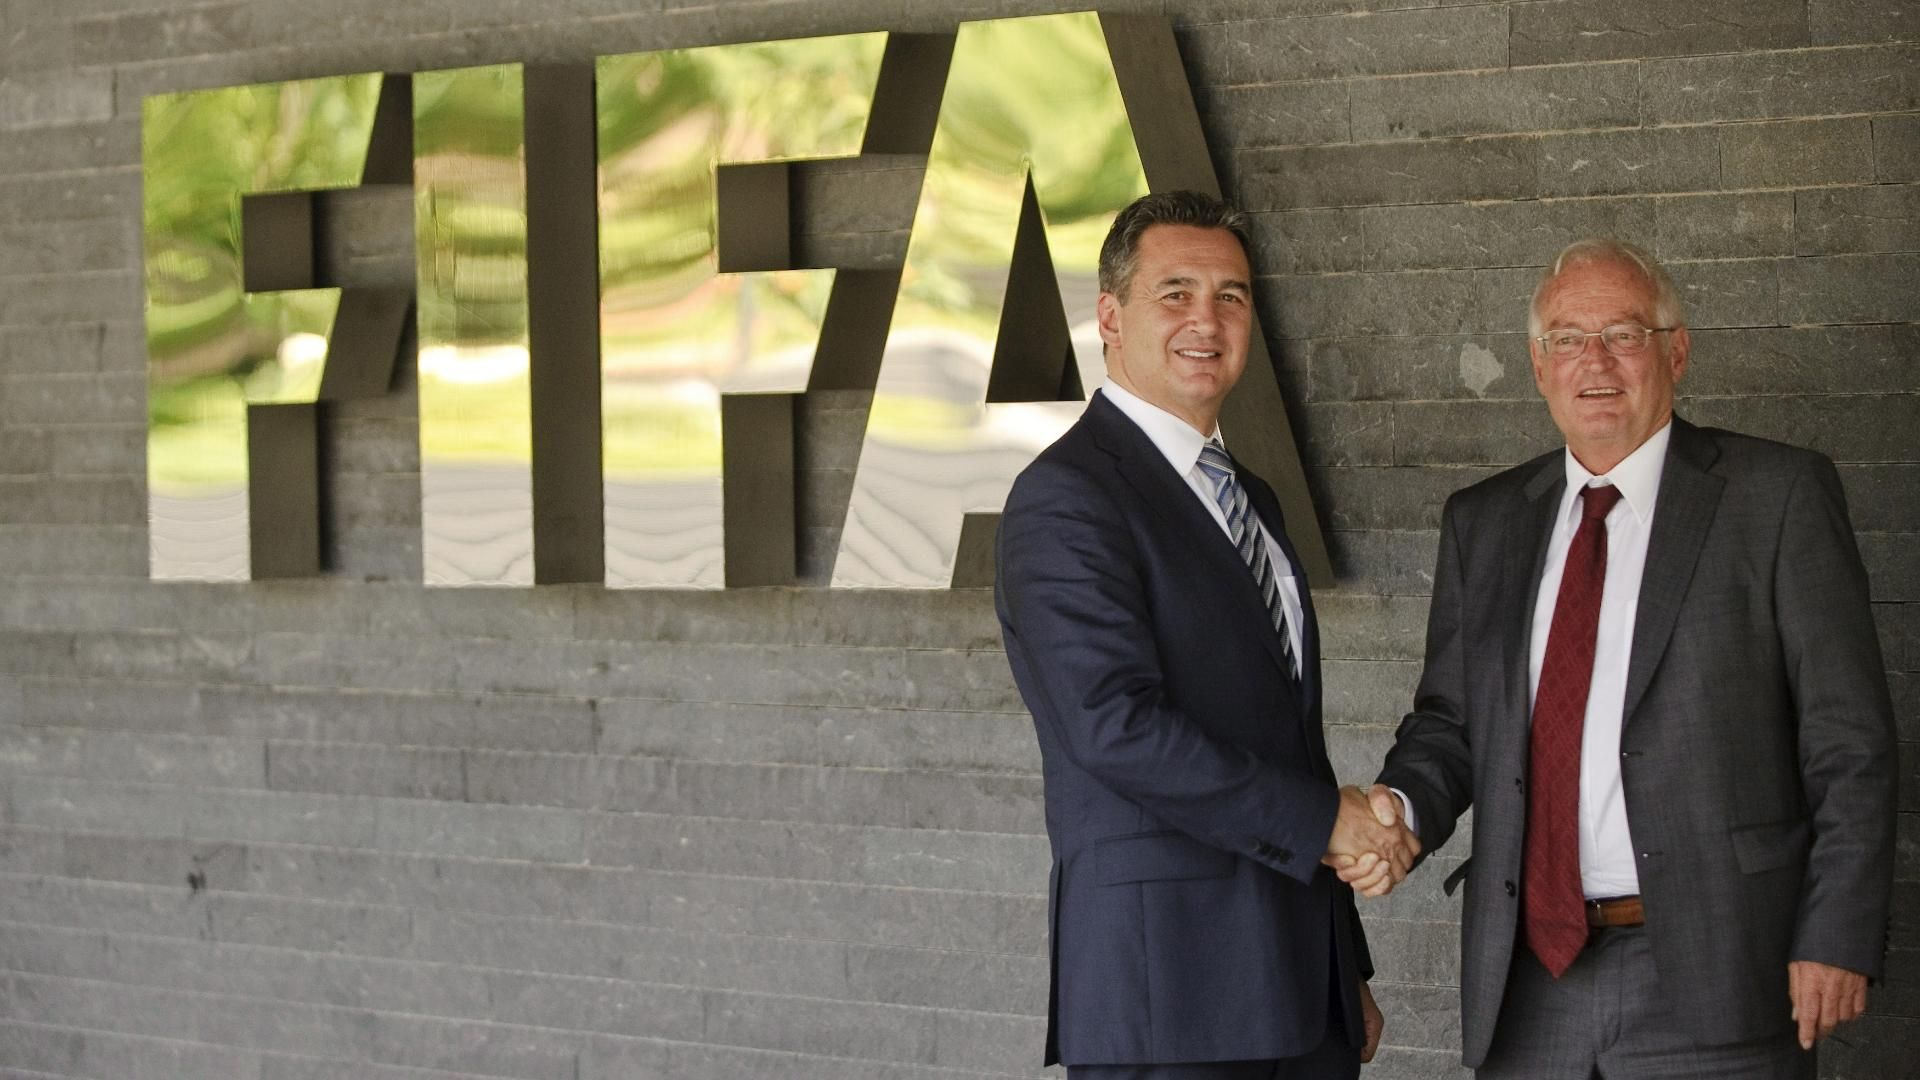 FIFA agrees to review World Cup corruption report